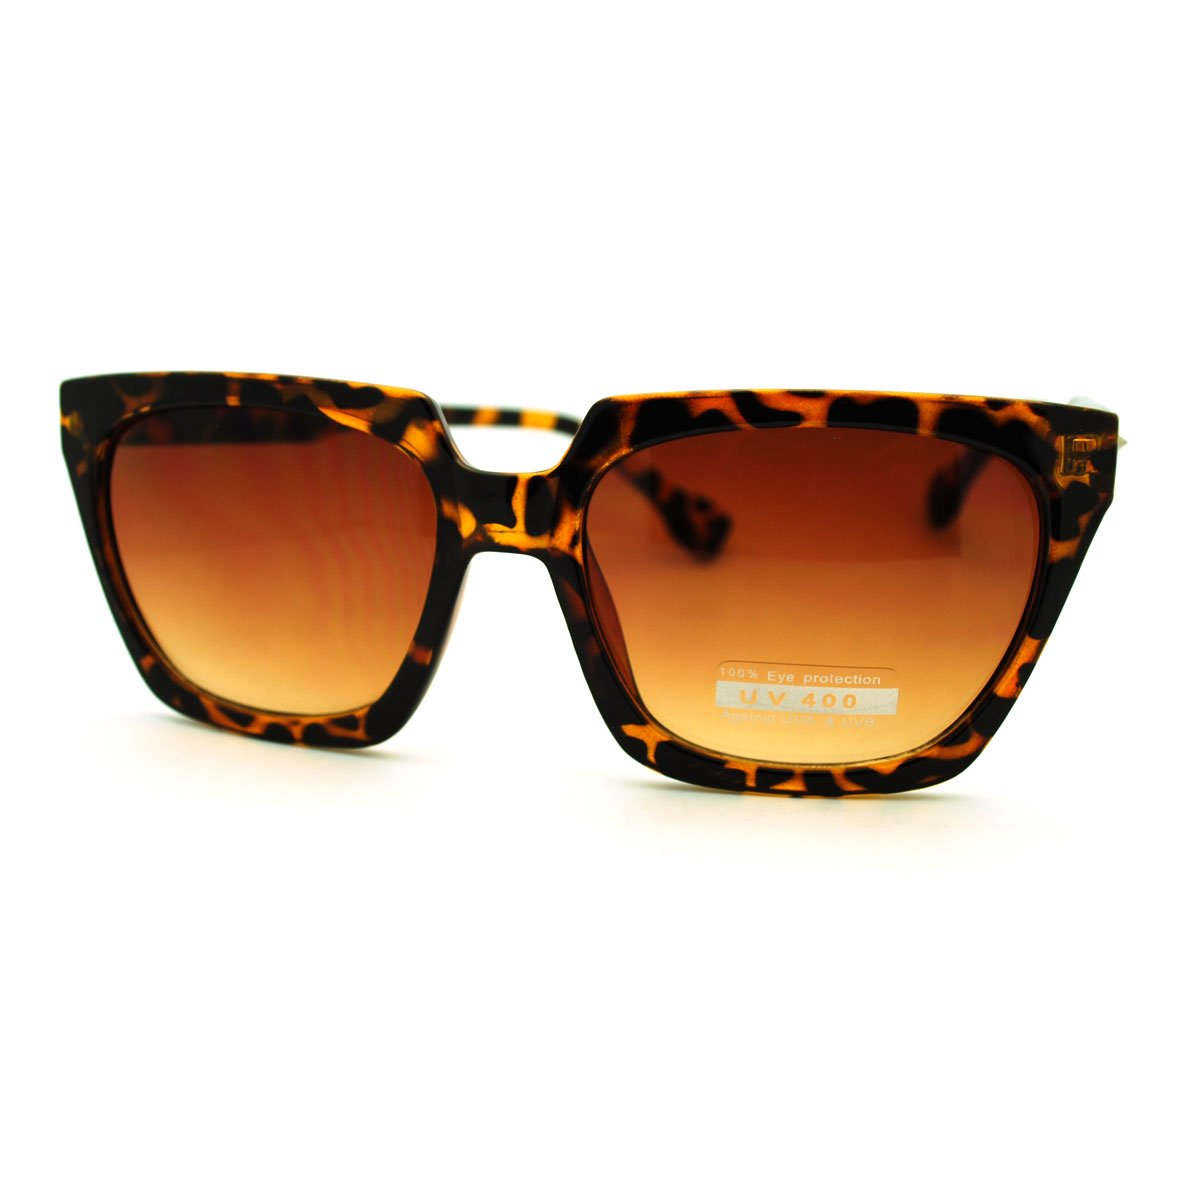 b1fcce5a0fd Amazon.com  Flat Top Square Sunglasses Thorn Studs Design Trendy Stylish  Shades (black